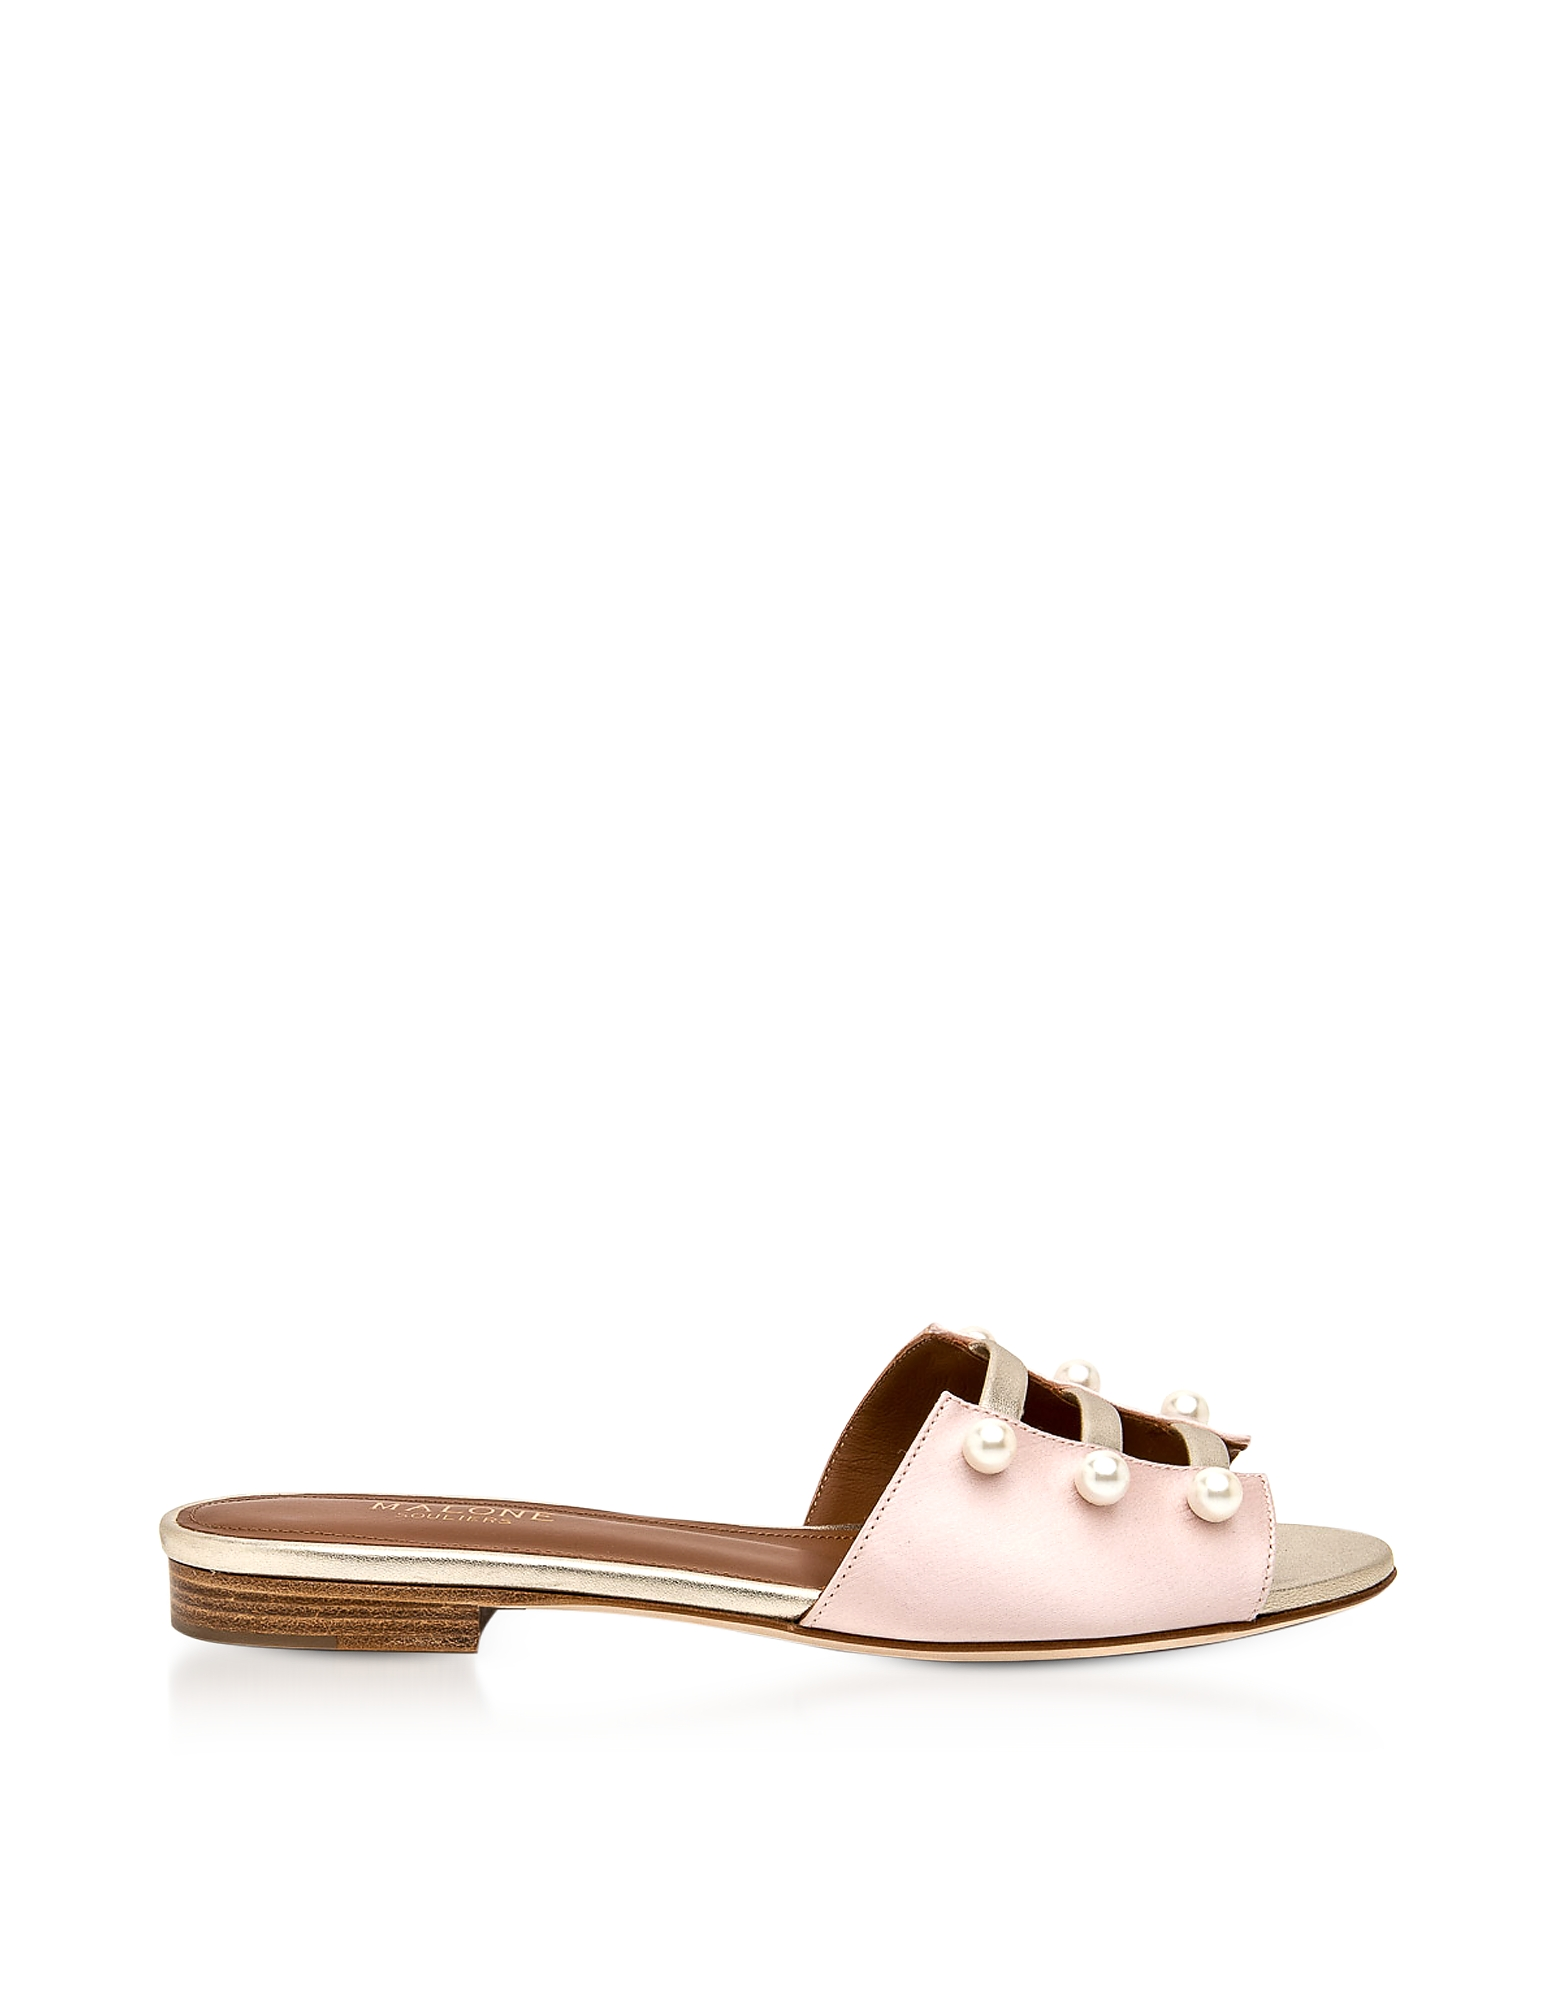 Malone Souliers Shoes, Zelda Rose Silk Satin and Platinum Metallic Nappa Leather Flat Sandals w/Pear